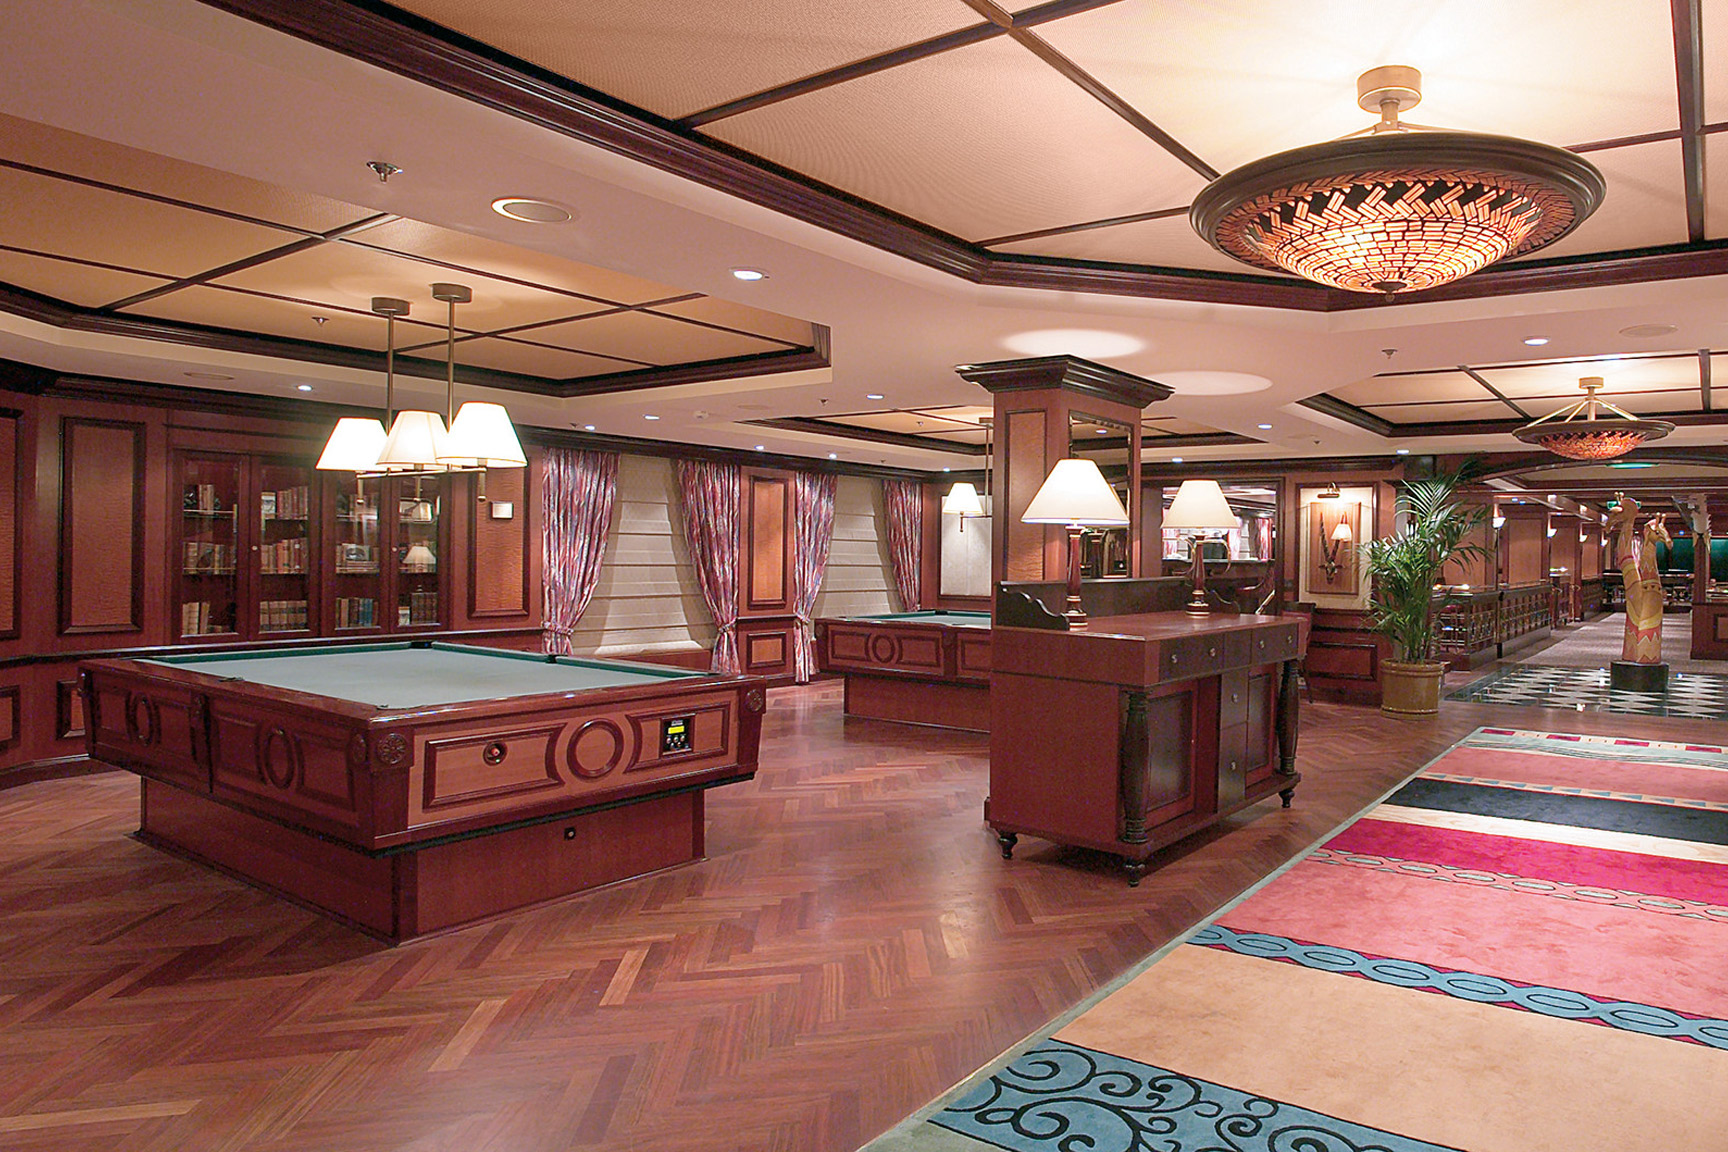 Royal Caribbean International Jewel of the Seas Accommodation Interior Pool Tables.jpg